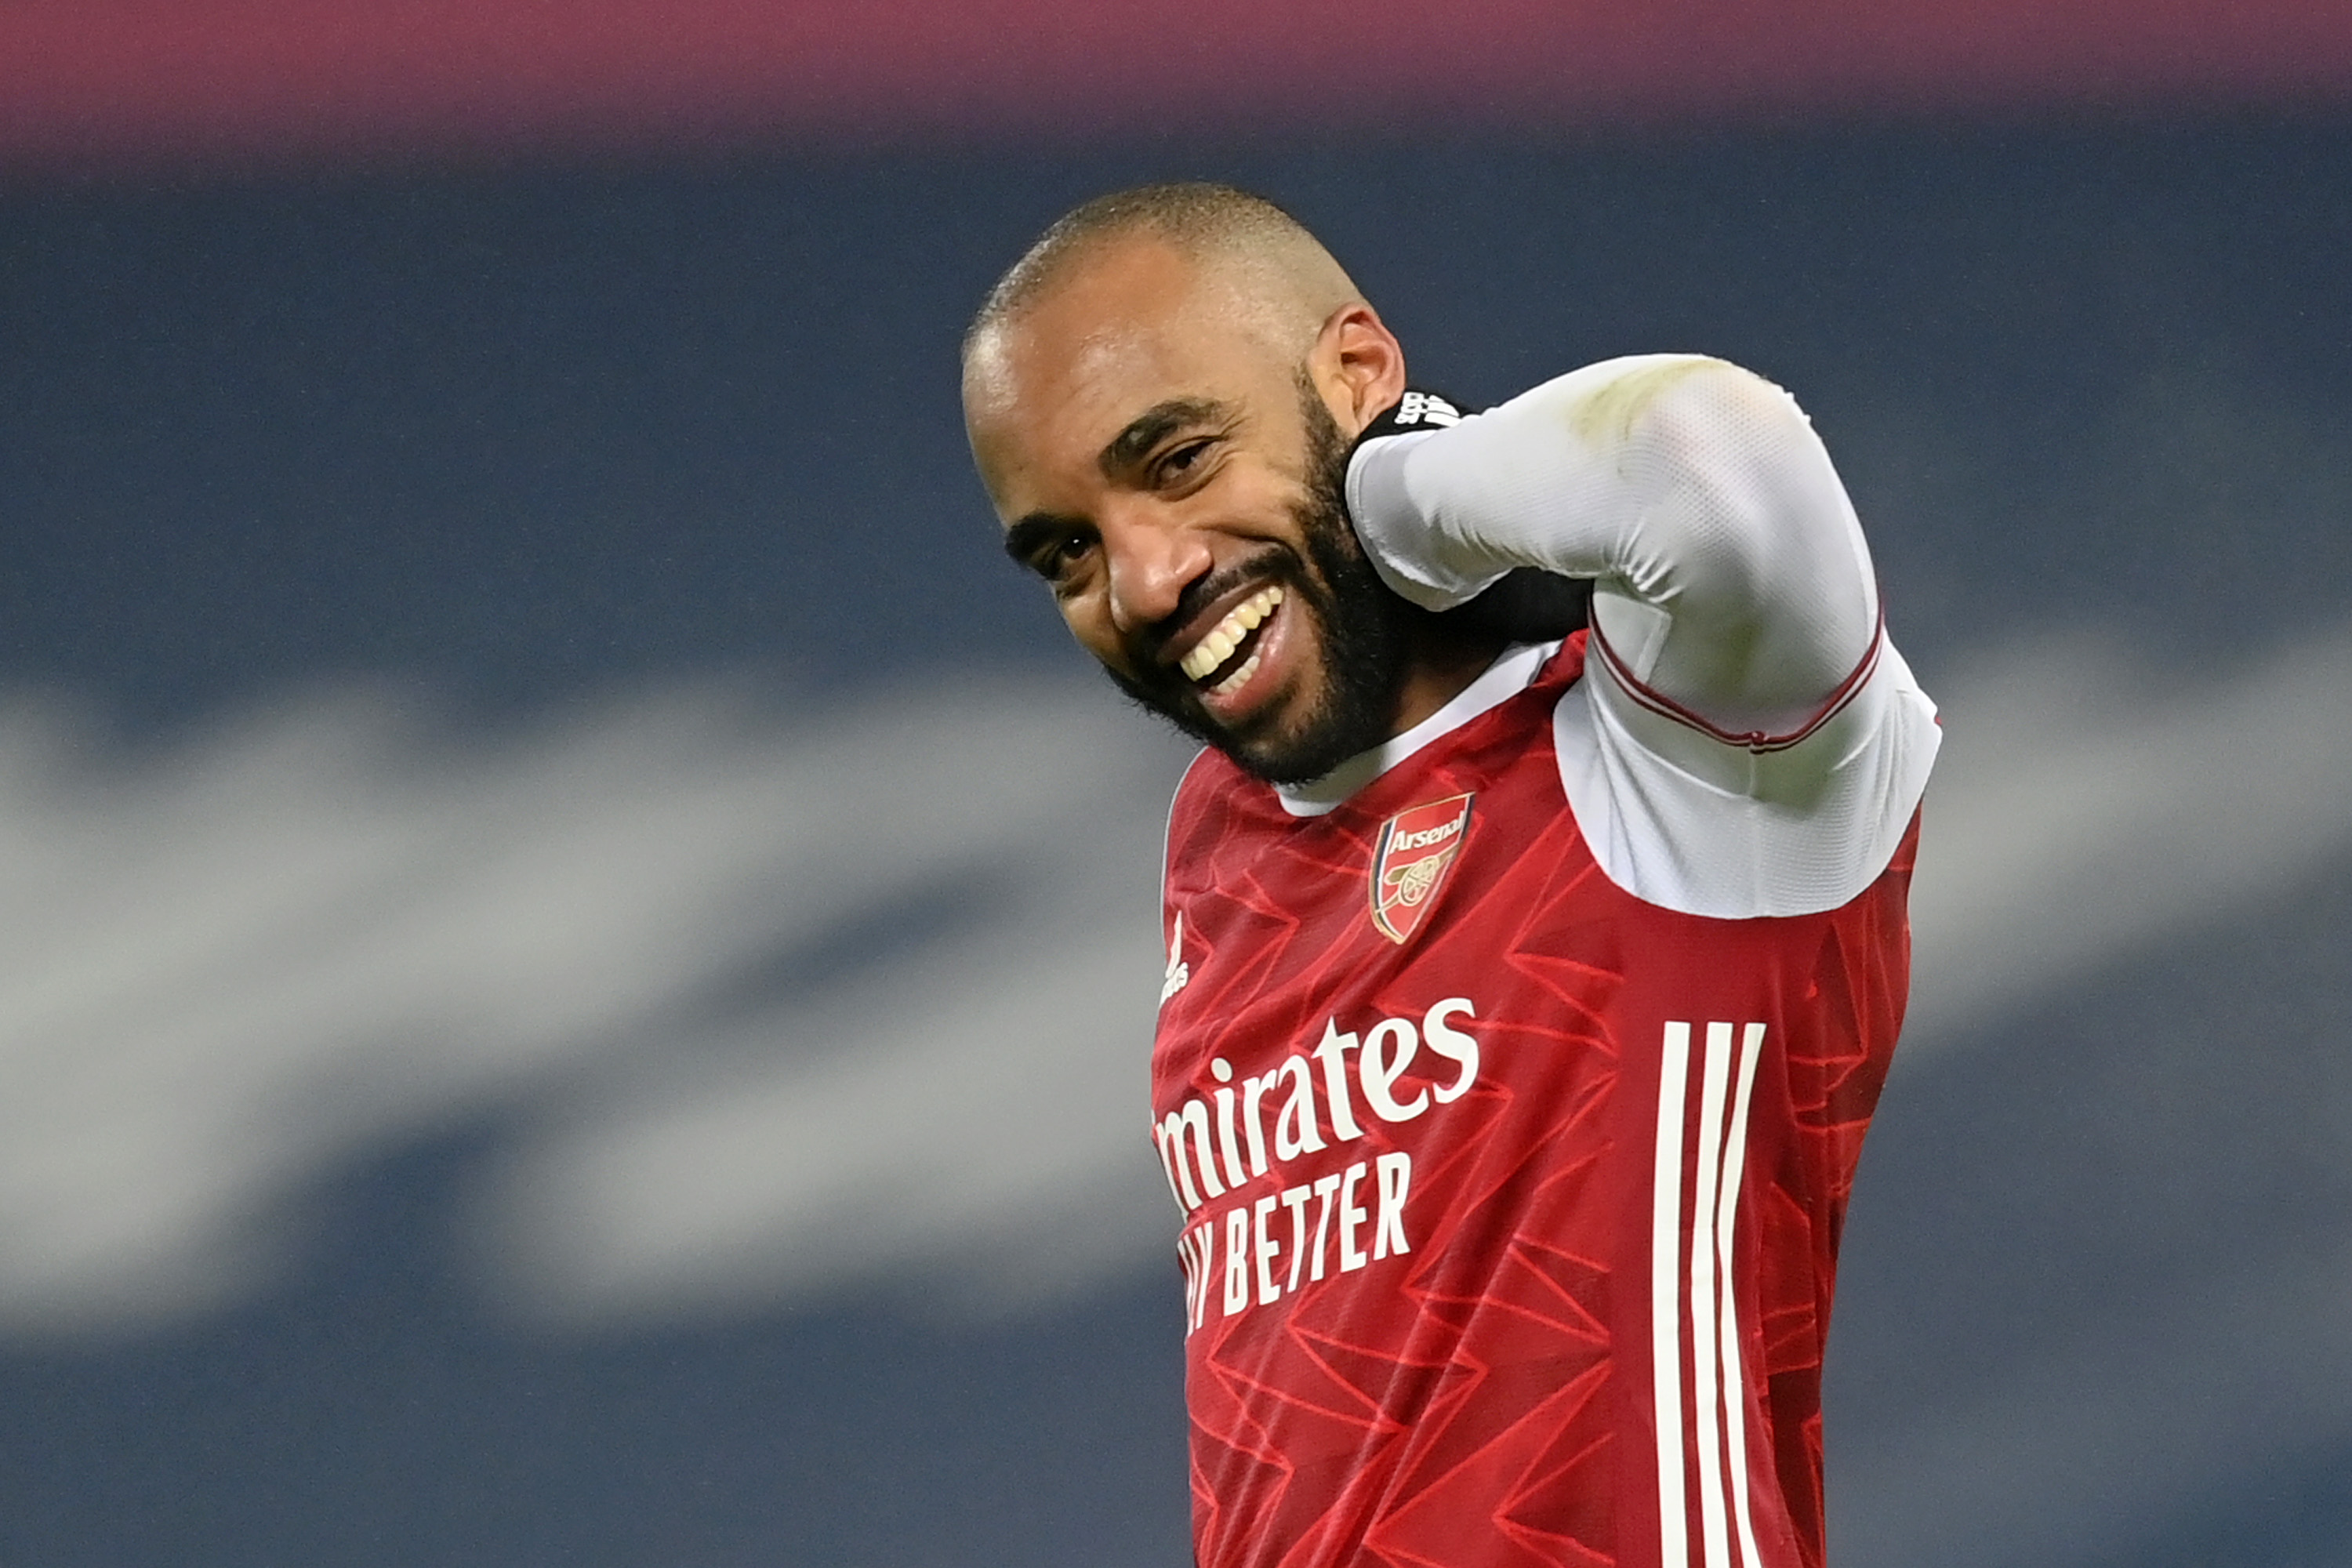 Alex Lacazette smiles at the camera as he rubs his neck